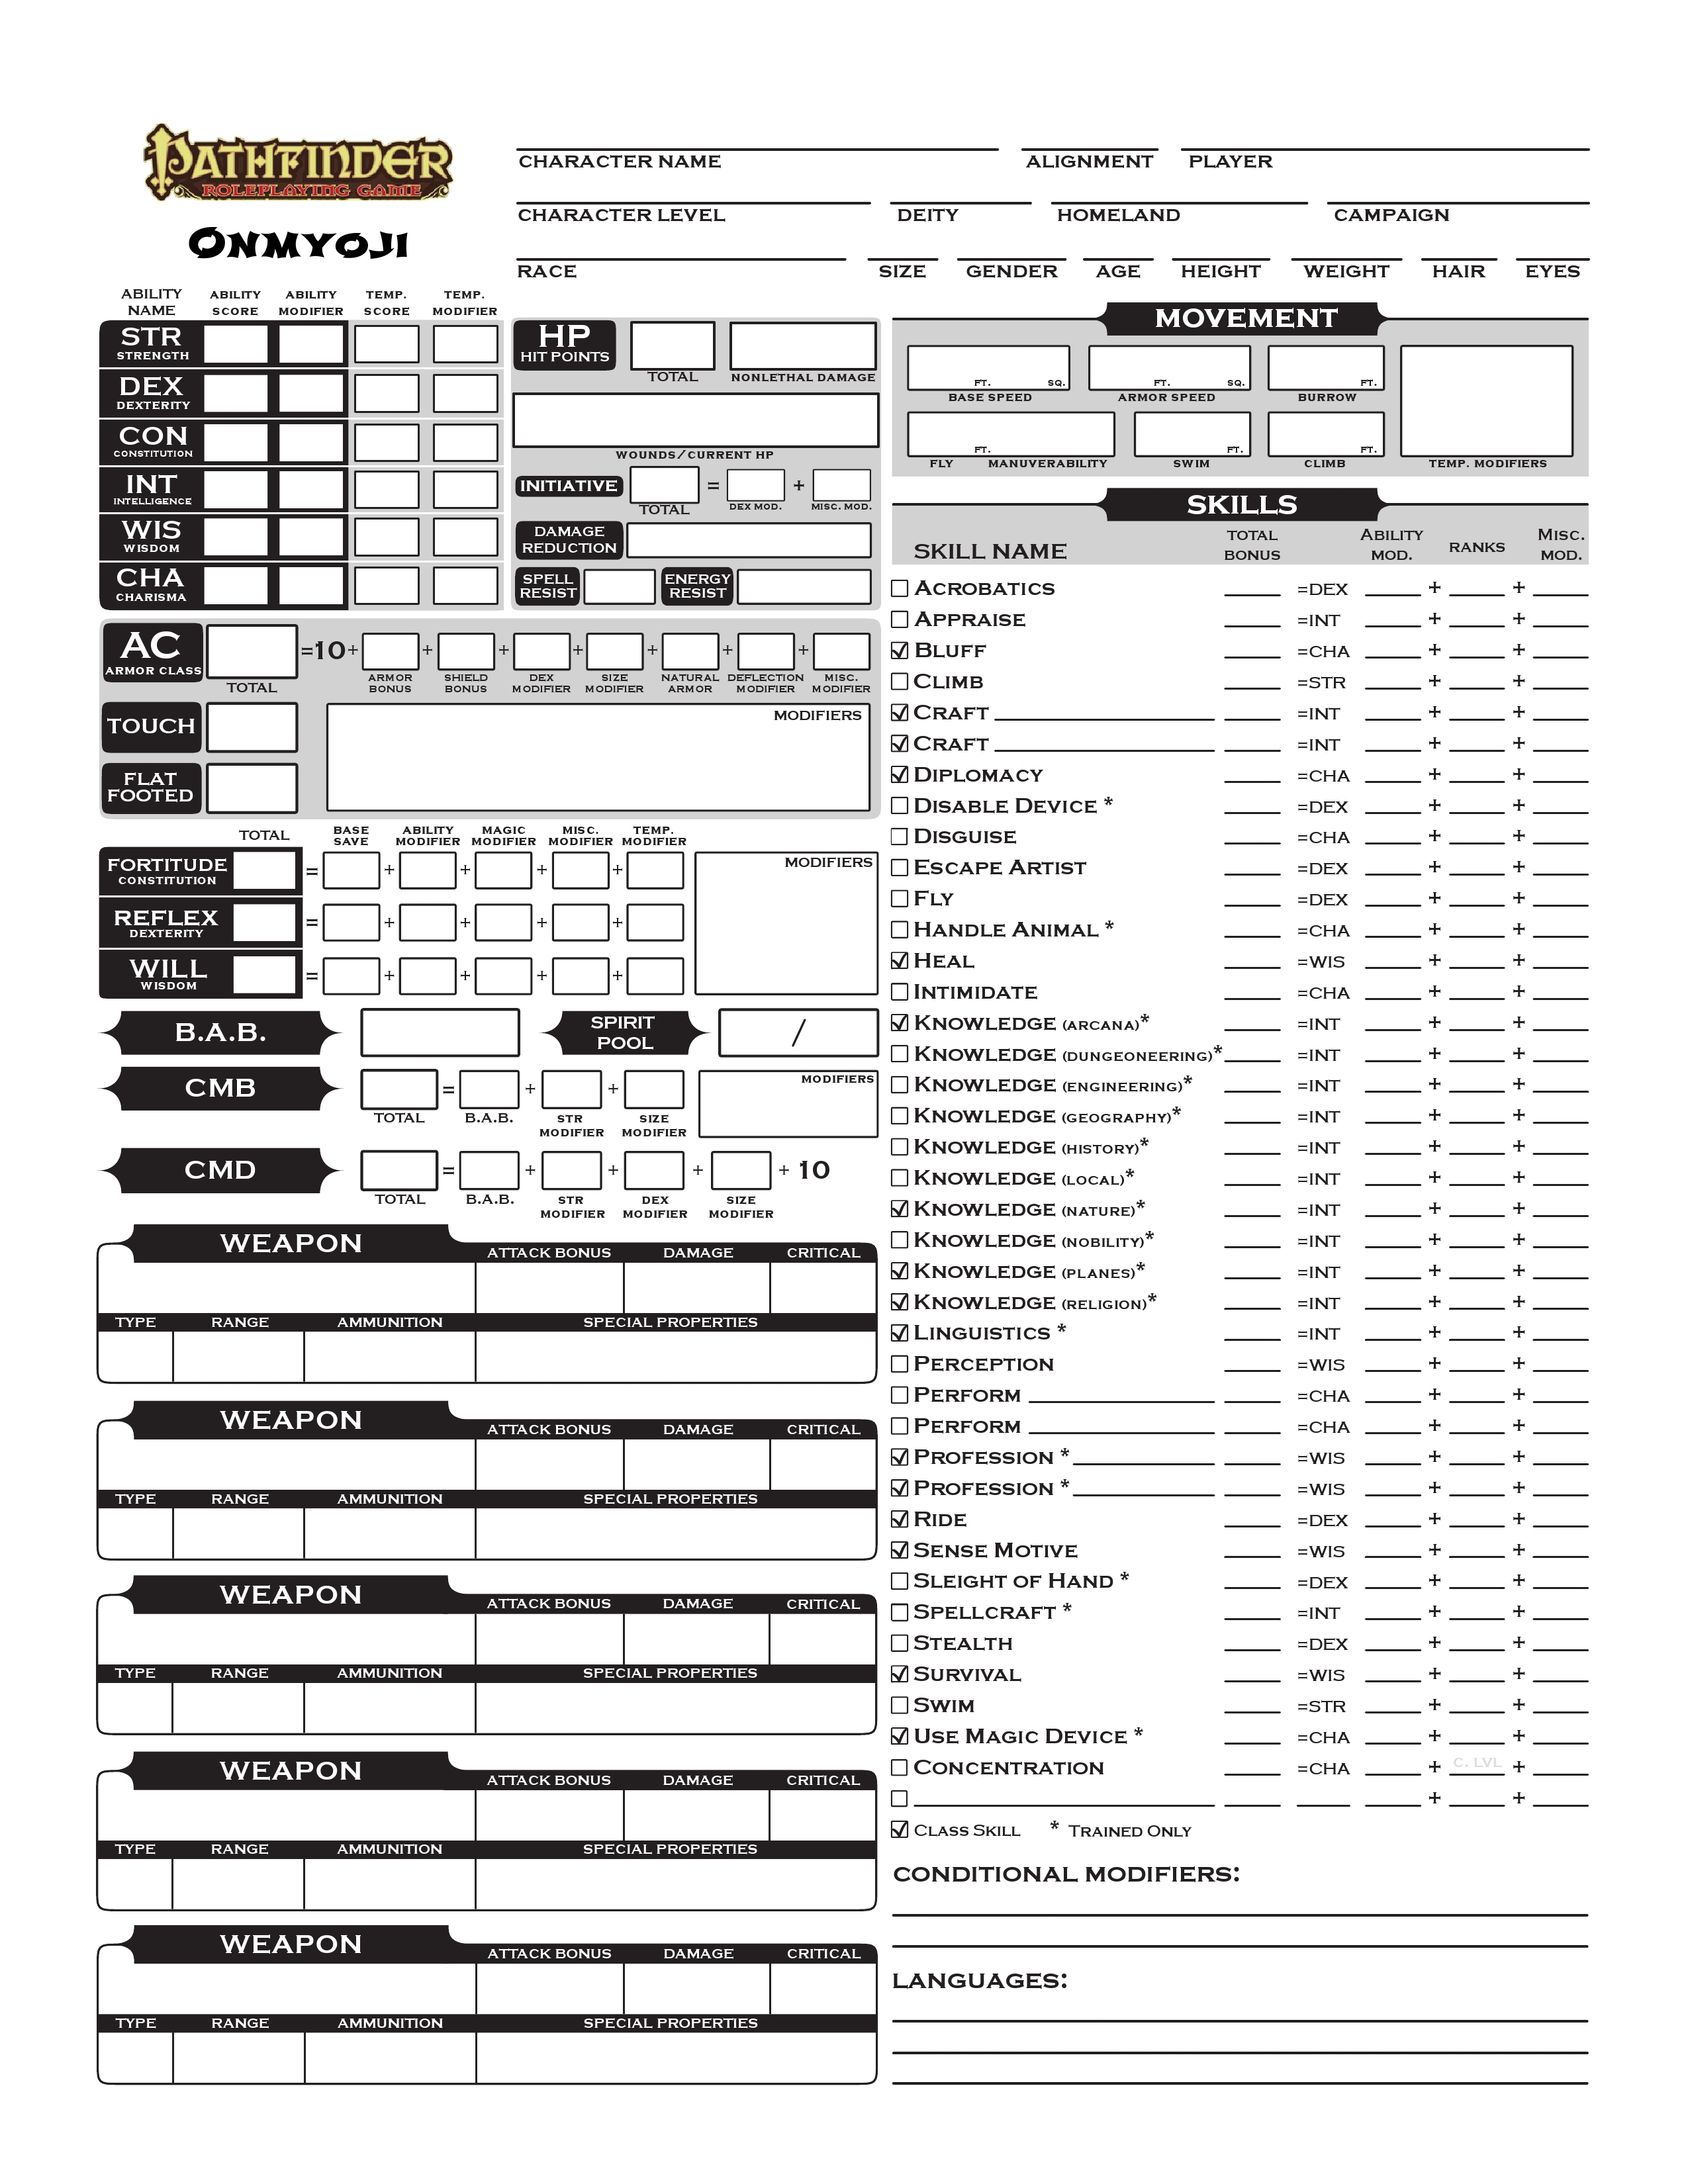 Official Pathfinder Character Sheet